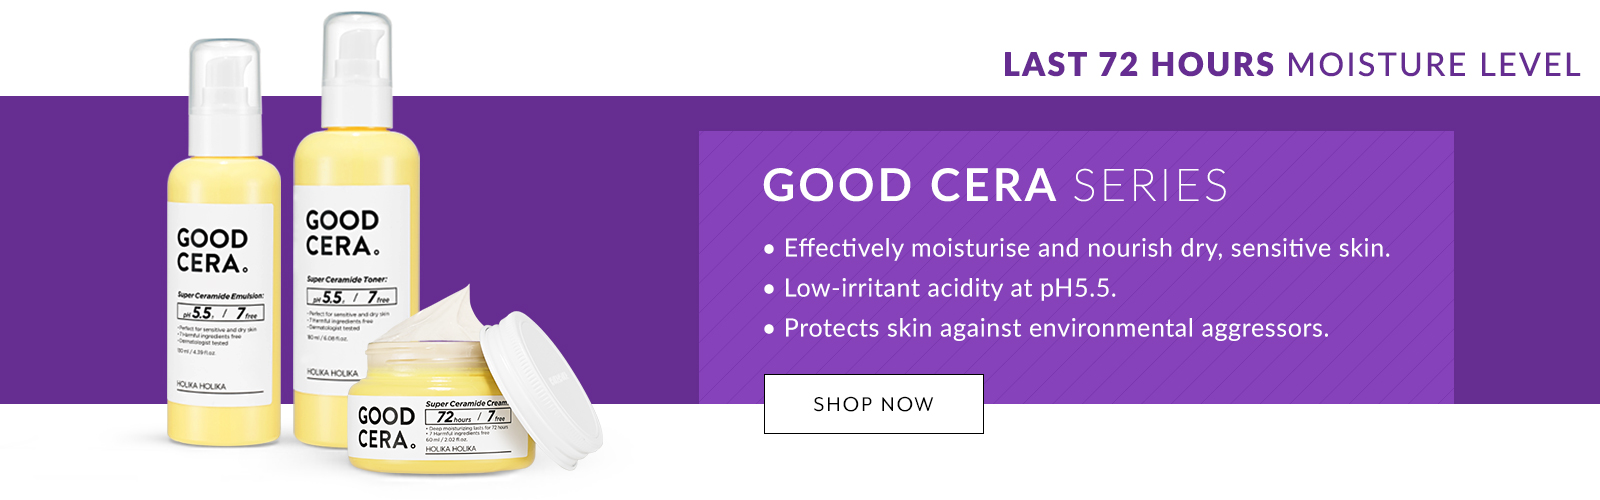 Holika Flagship Highlight Good Cera Dry Skin